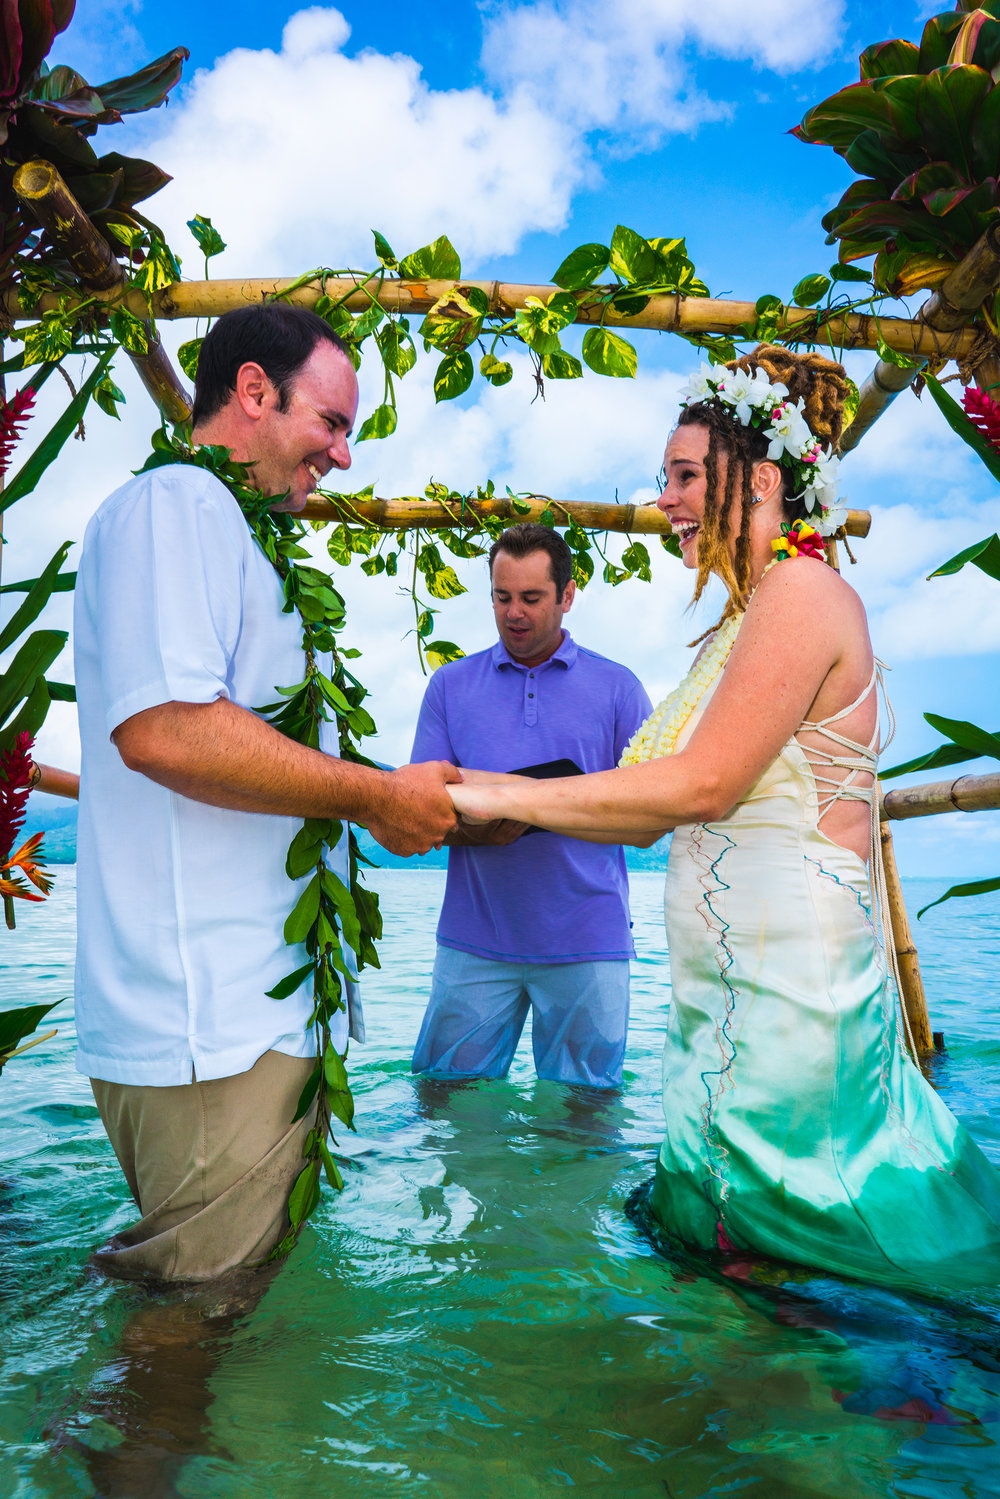 stan-moniz-photography-hawaii-wedding-photos.jpg